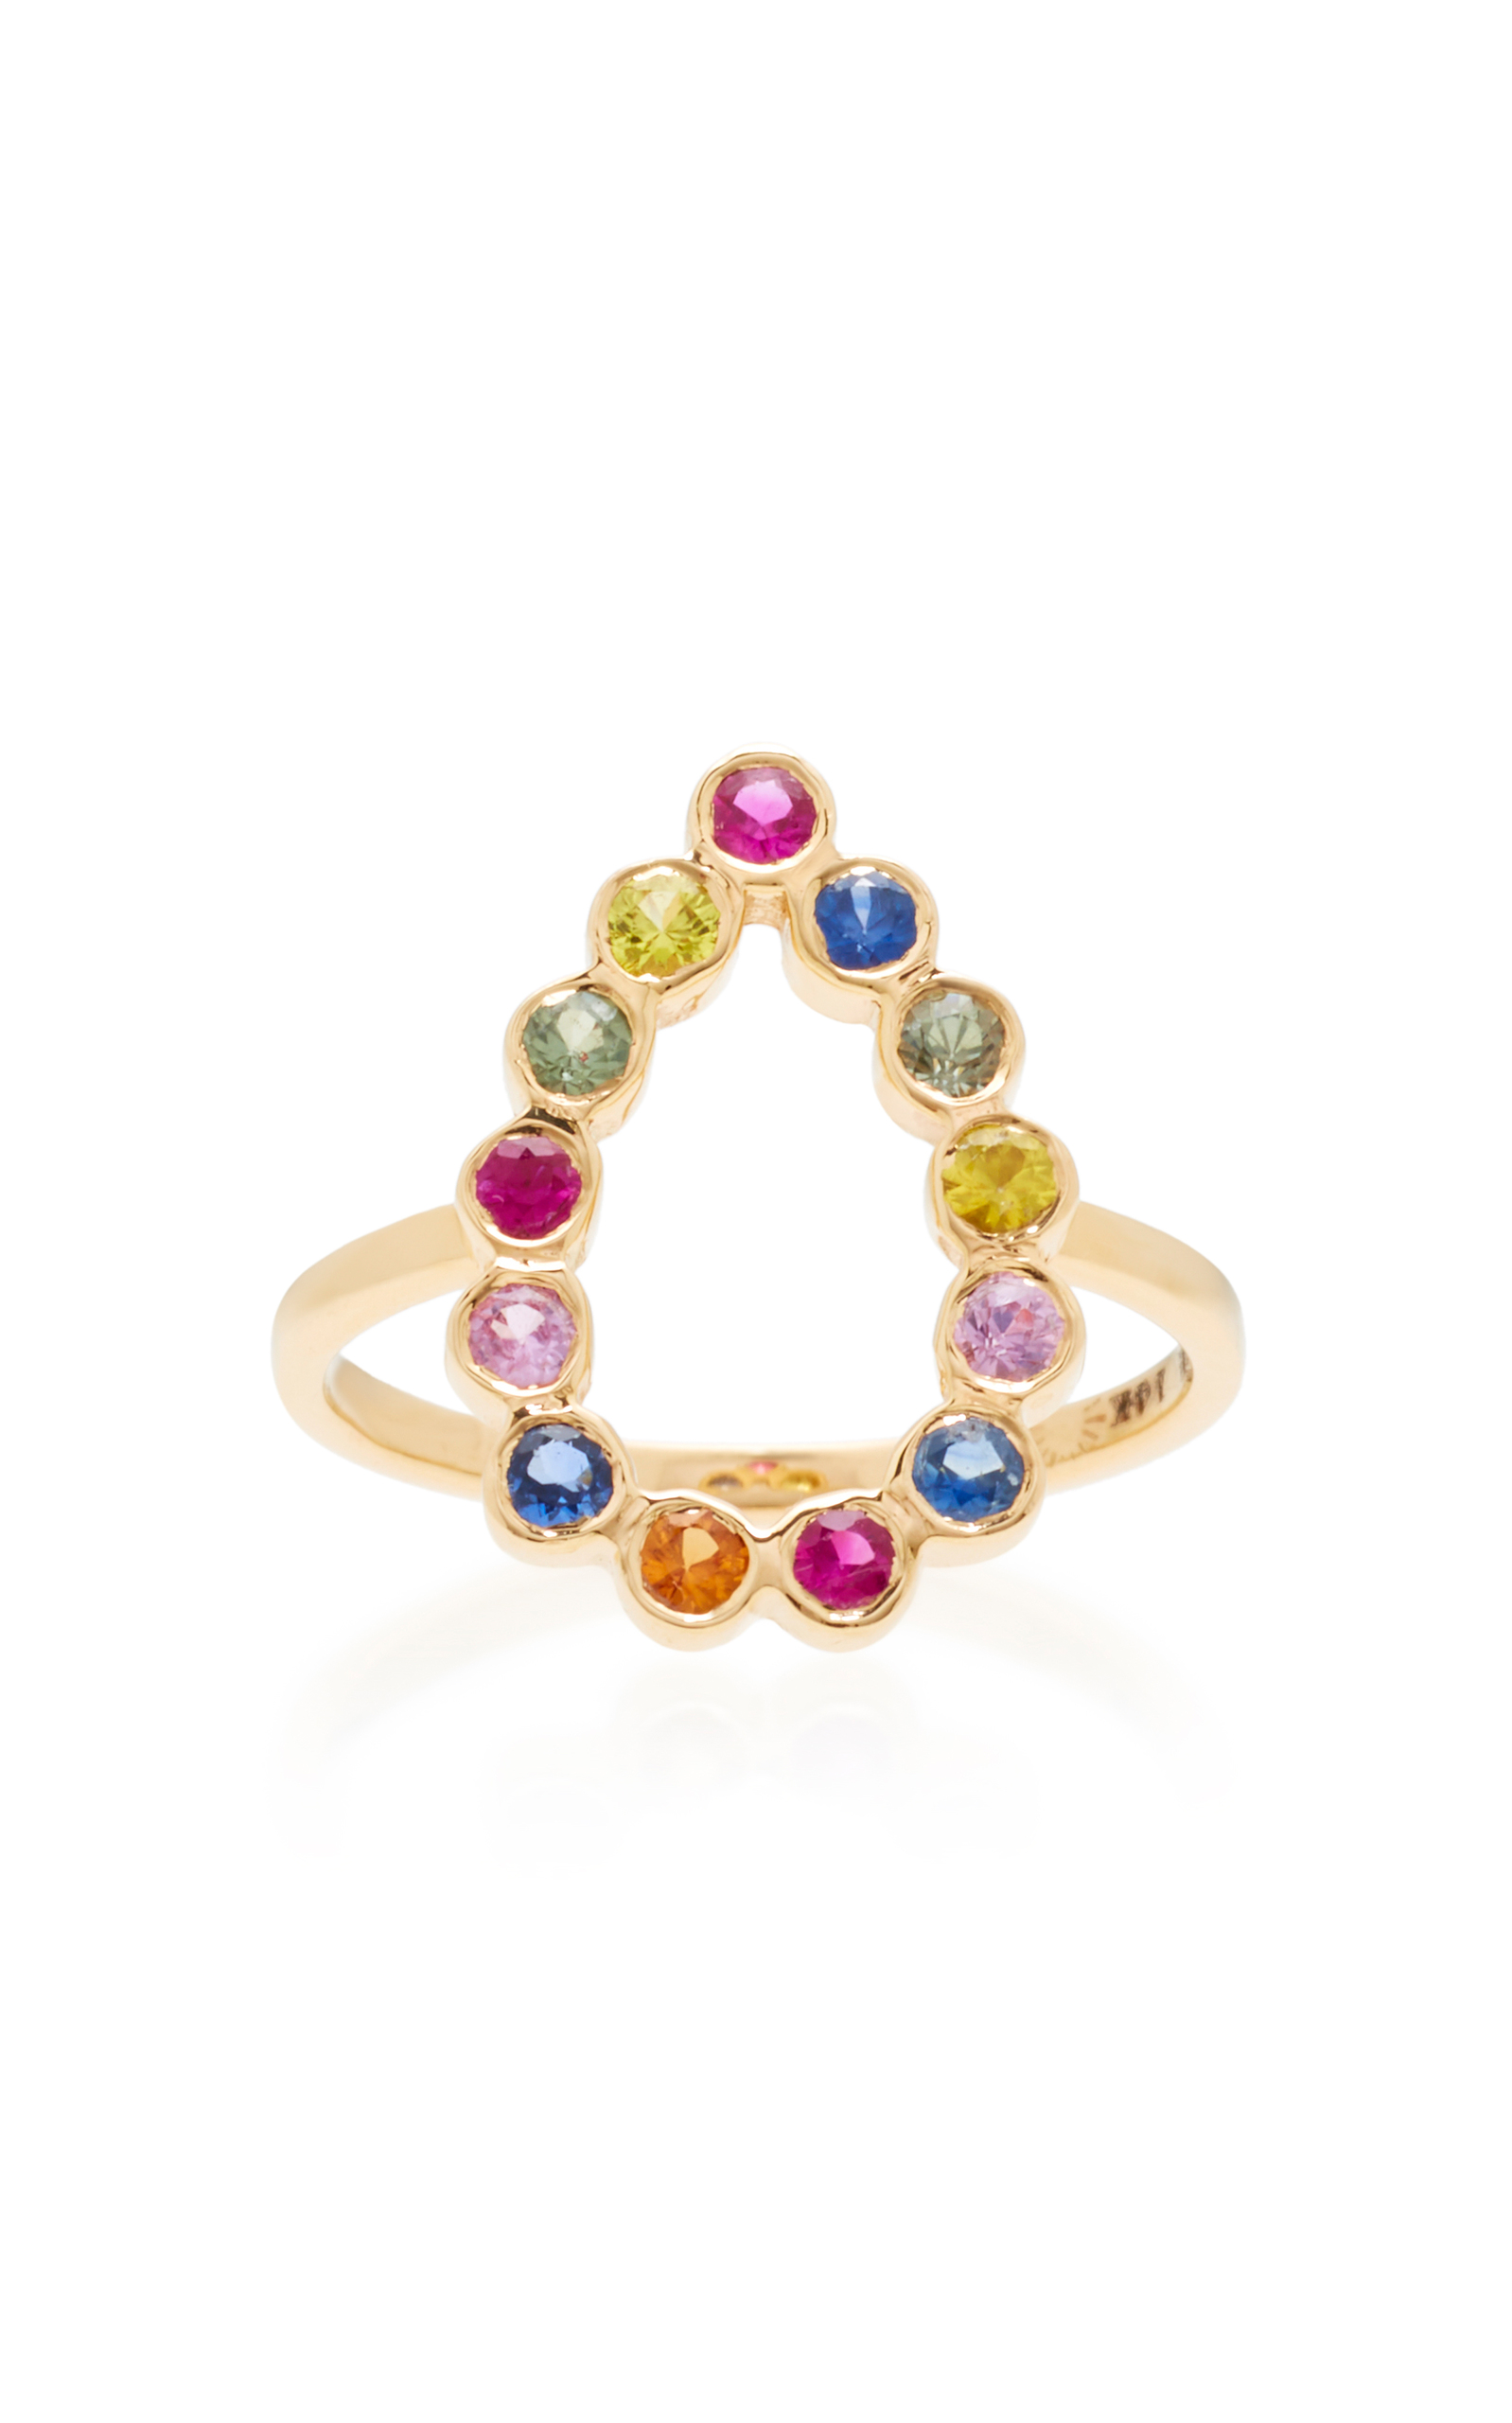 SHE BEE OPEN PEAR 14K GOLD SAPPHIRE RING